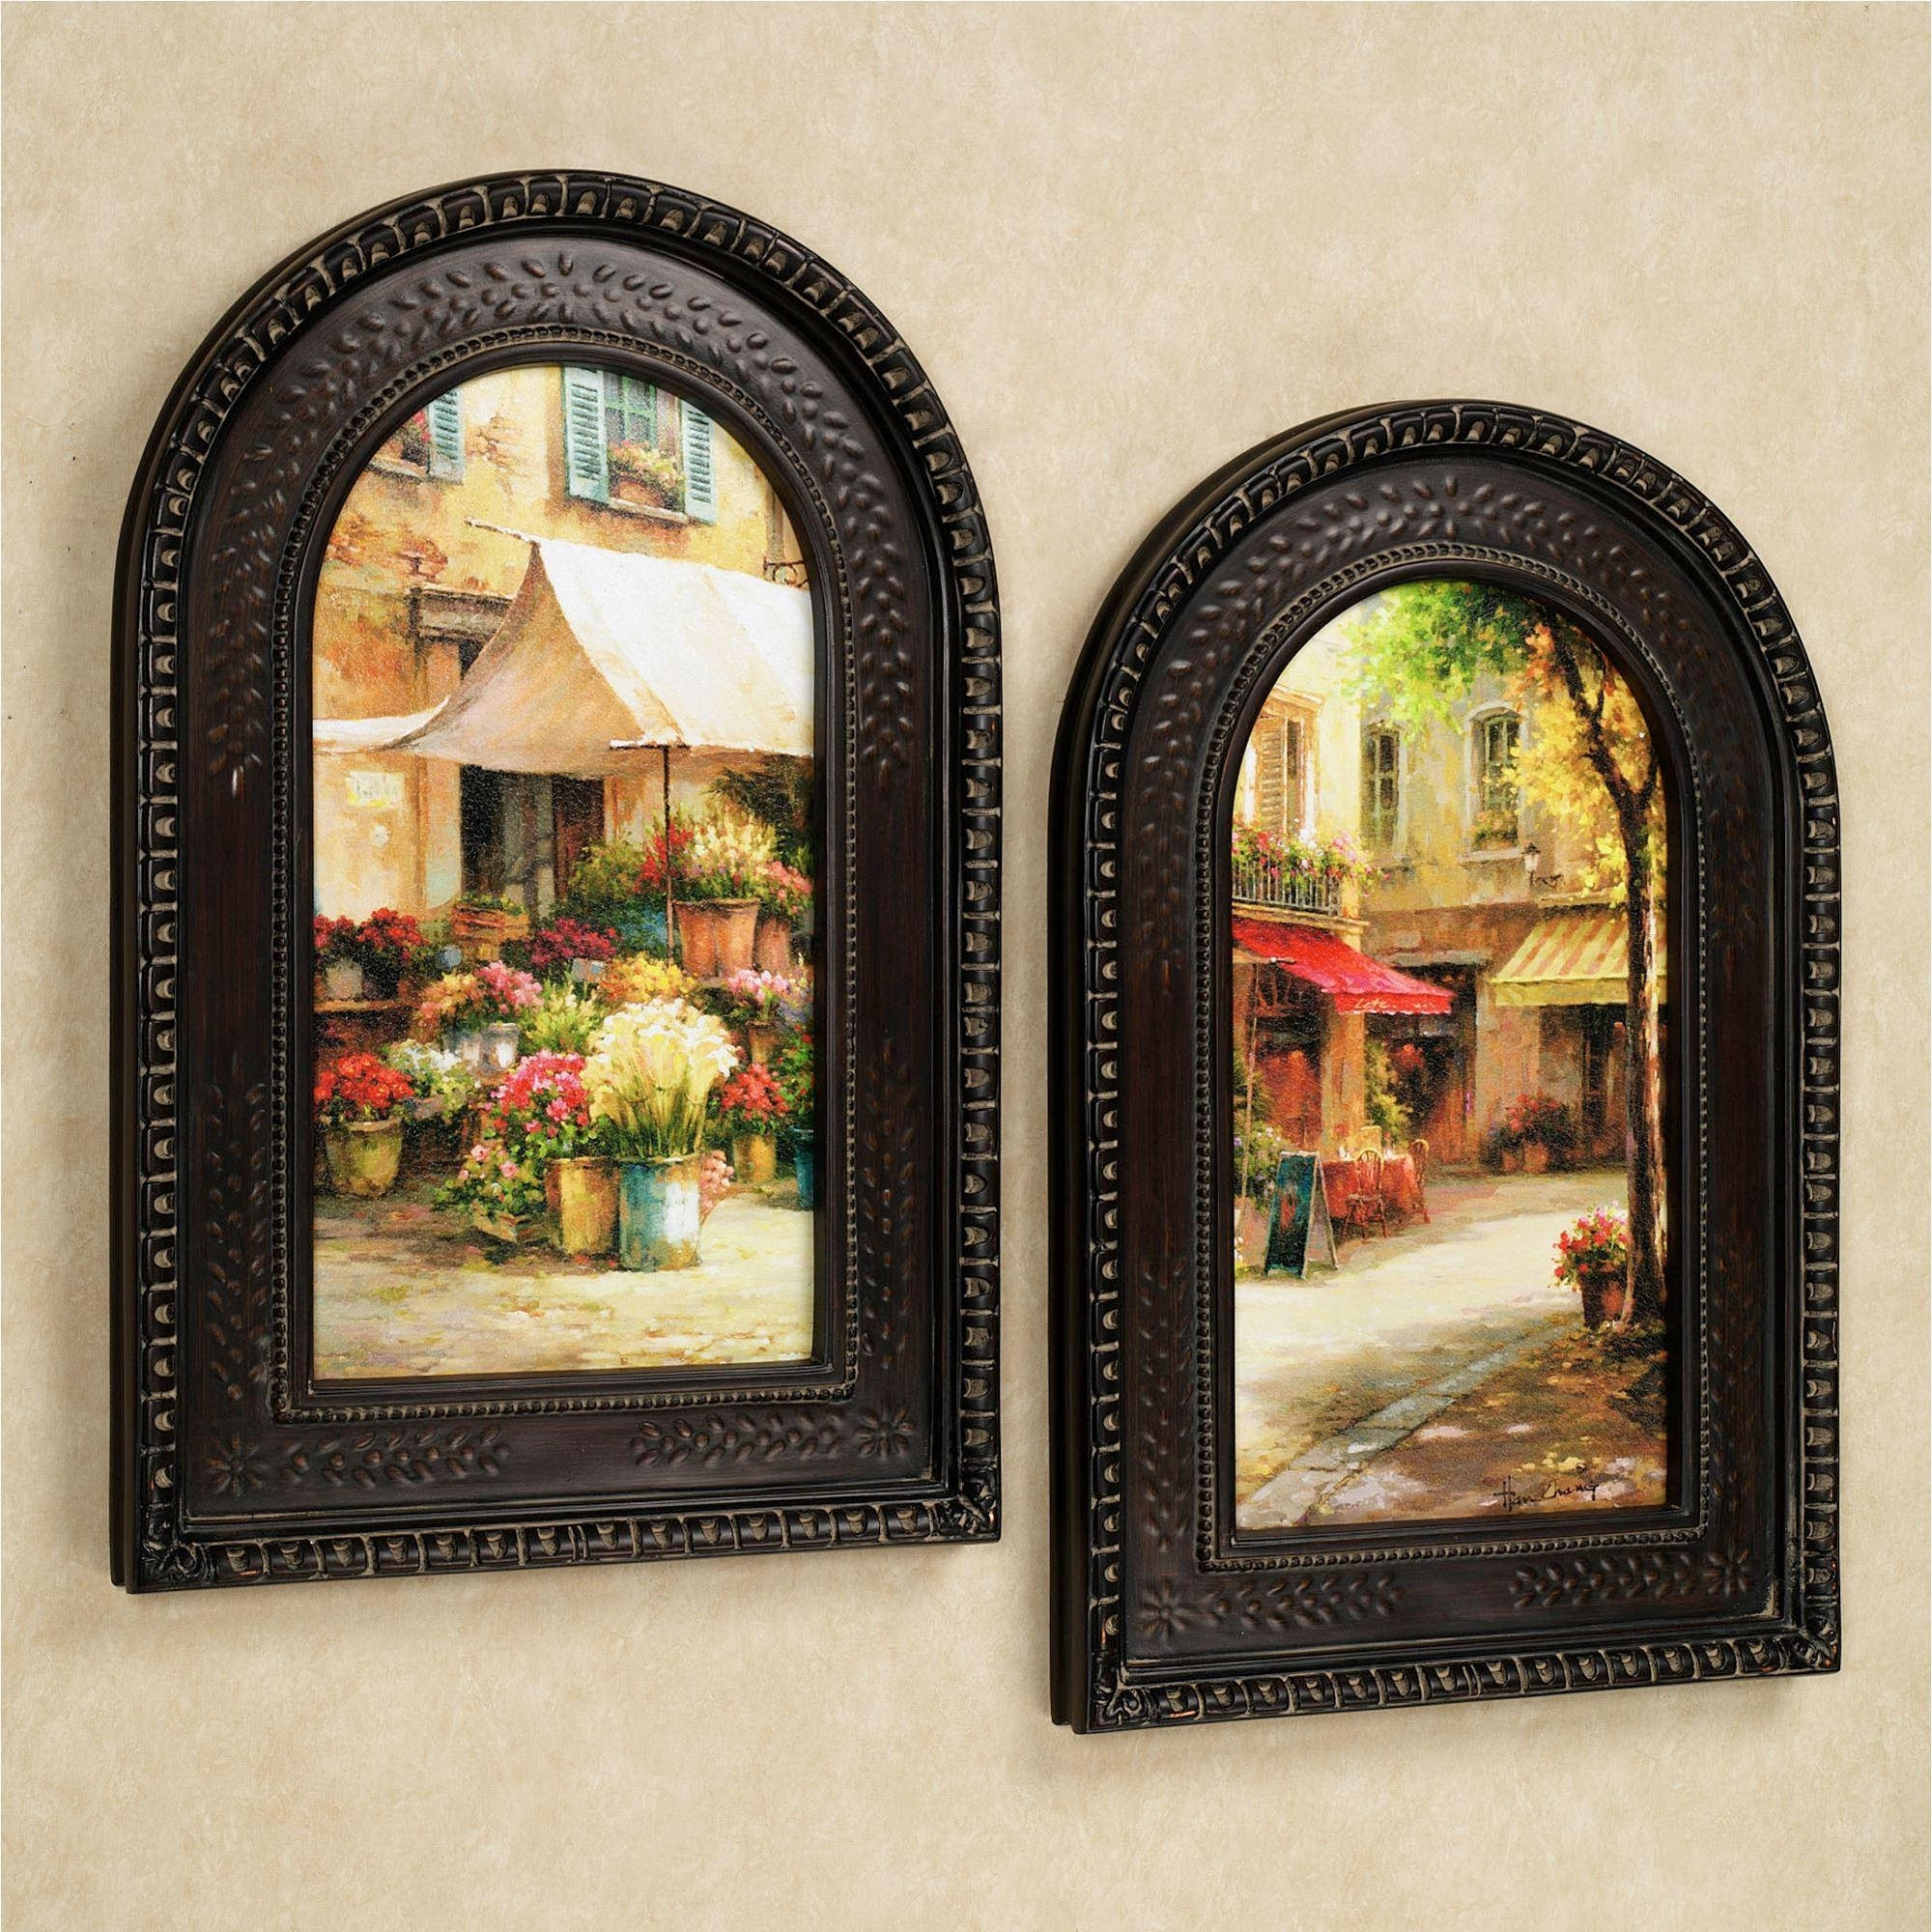 The Flower Market Arched Framed Wall Art Set In Italian Wall Art For The Kitchen (View 5 of 20)